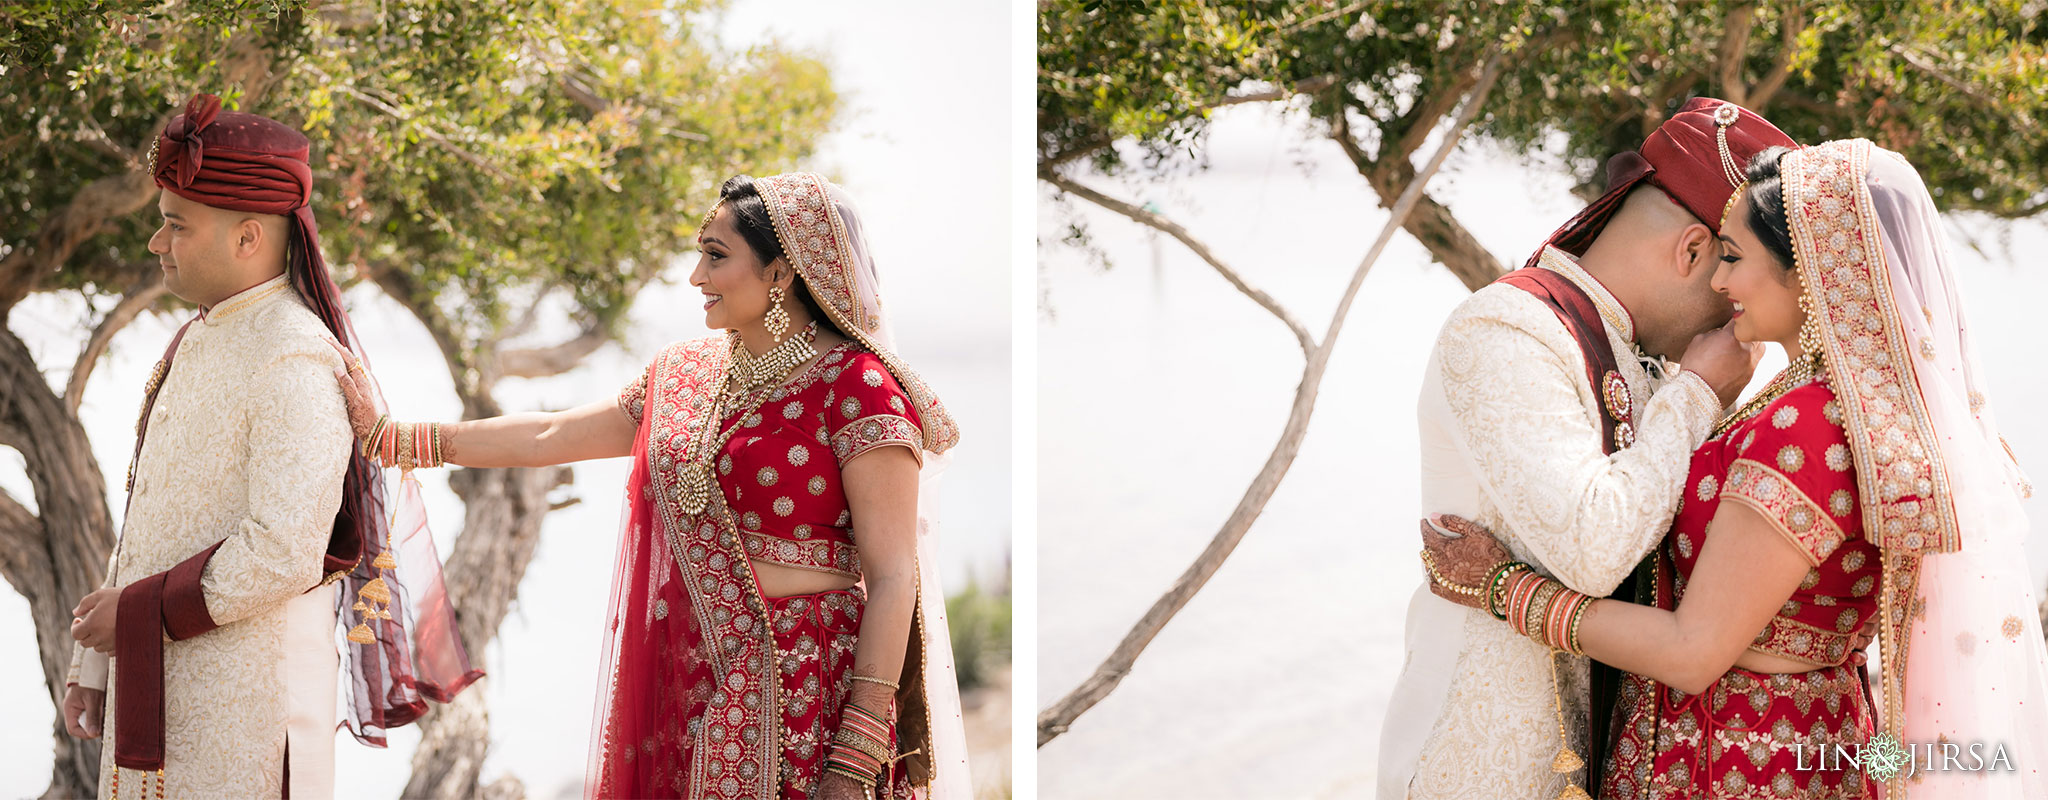 13 loews coronado bay resort indian first look wedding photography